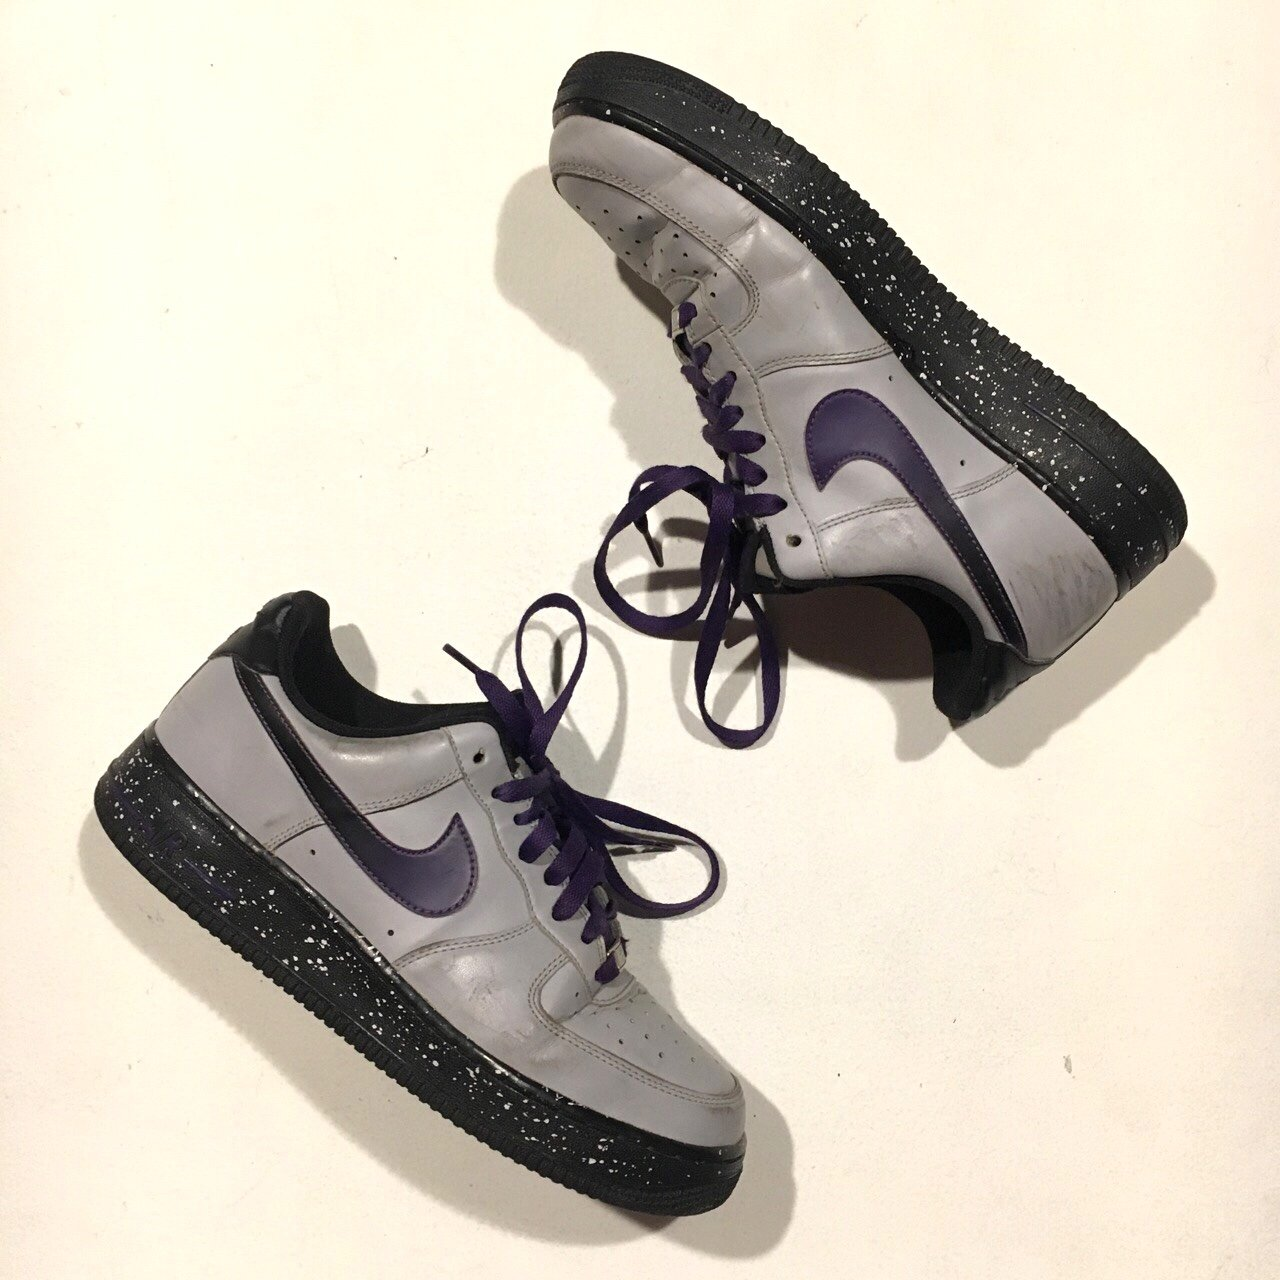 d57b0440f0c2d Nike Air Force 1 One AF1 Ghost Grey, Court Purple With Black - Depop